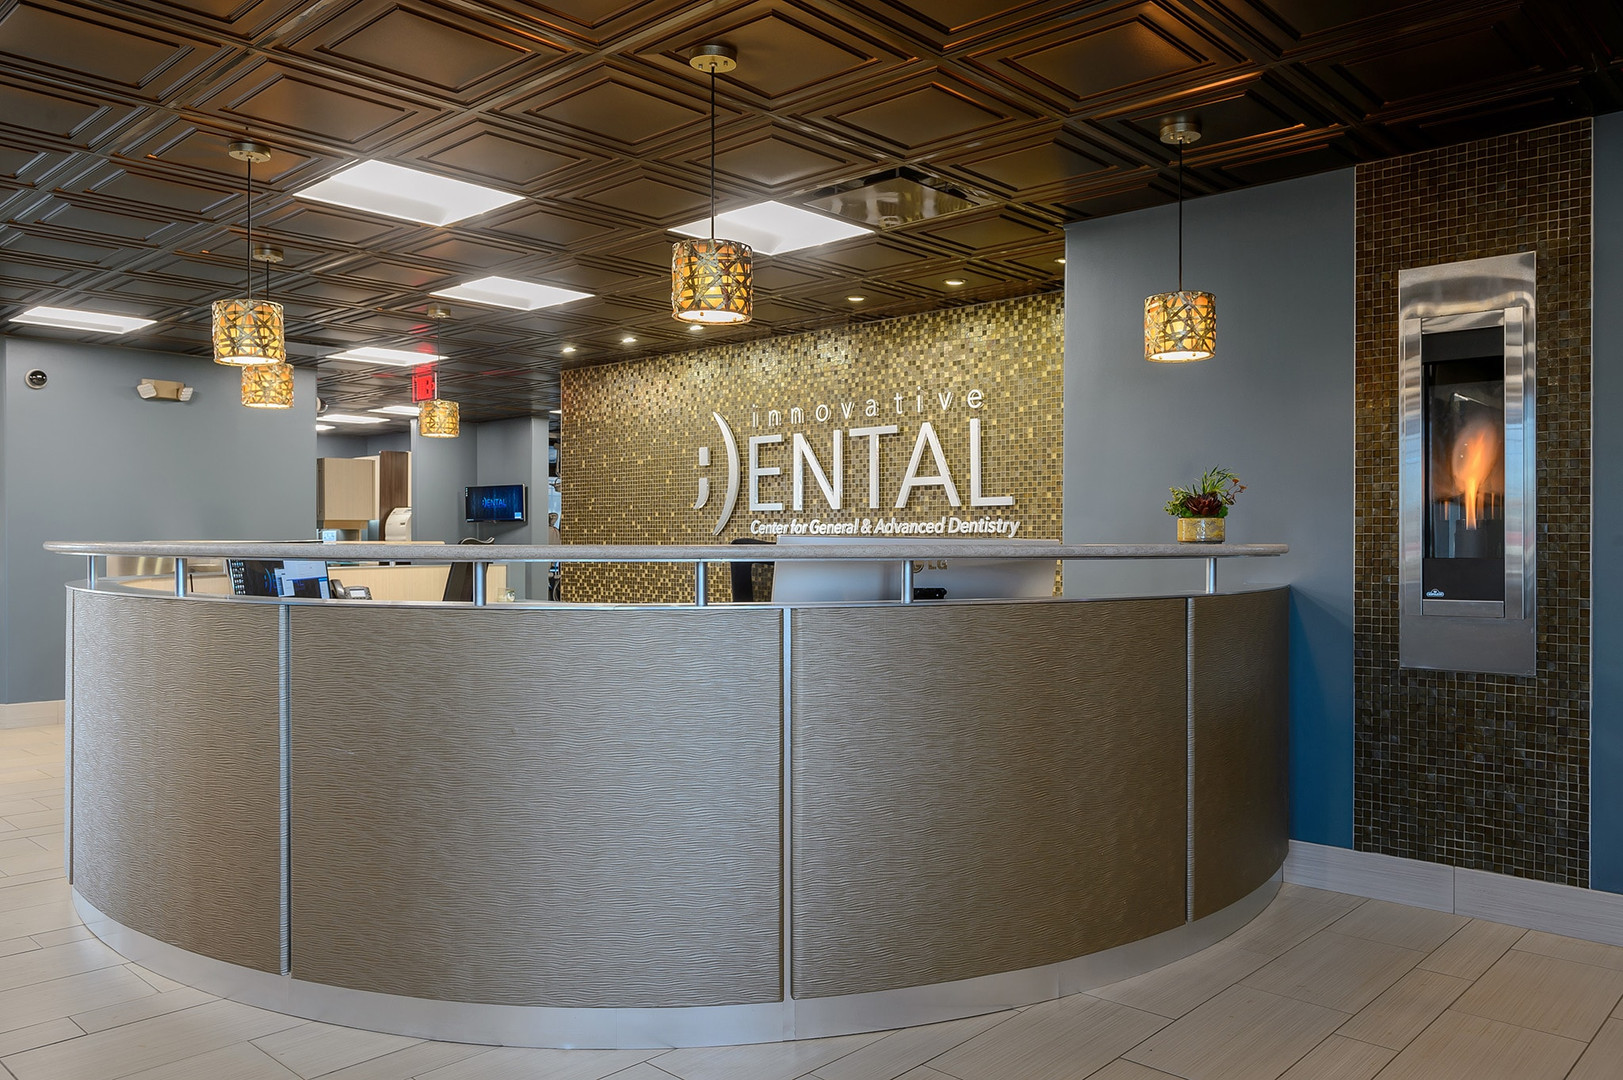 Innovative Dental of Springfield